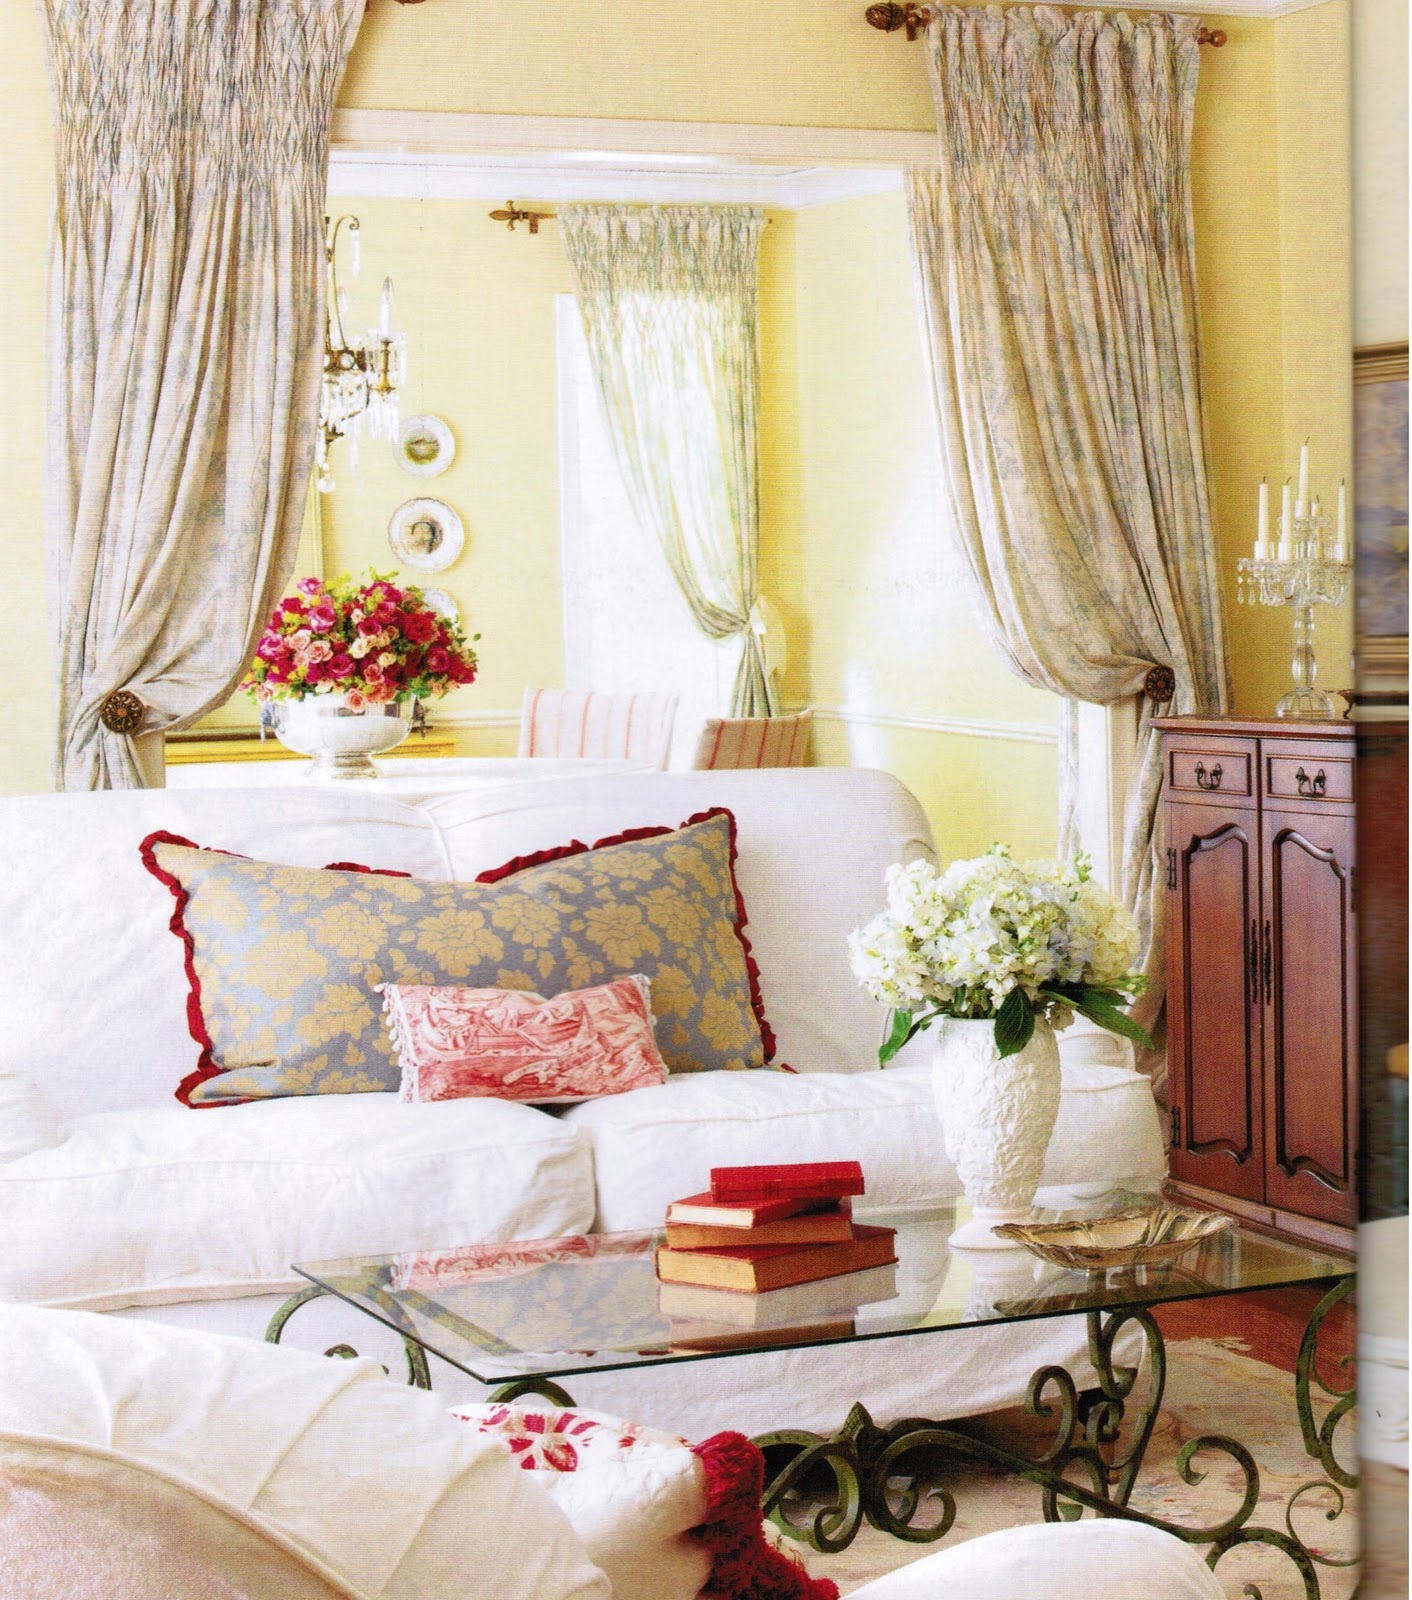 Maison decor french country enchanting yellow white for Country french decorating ideas living room